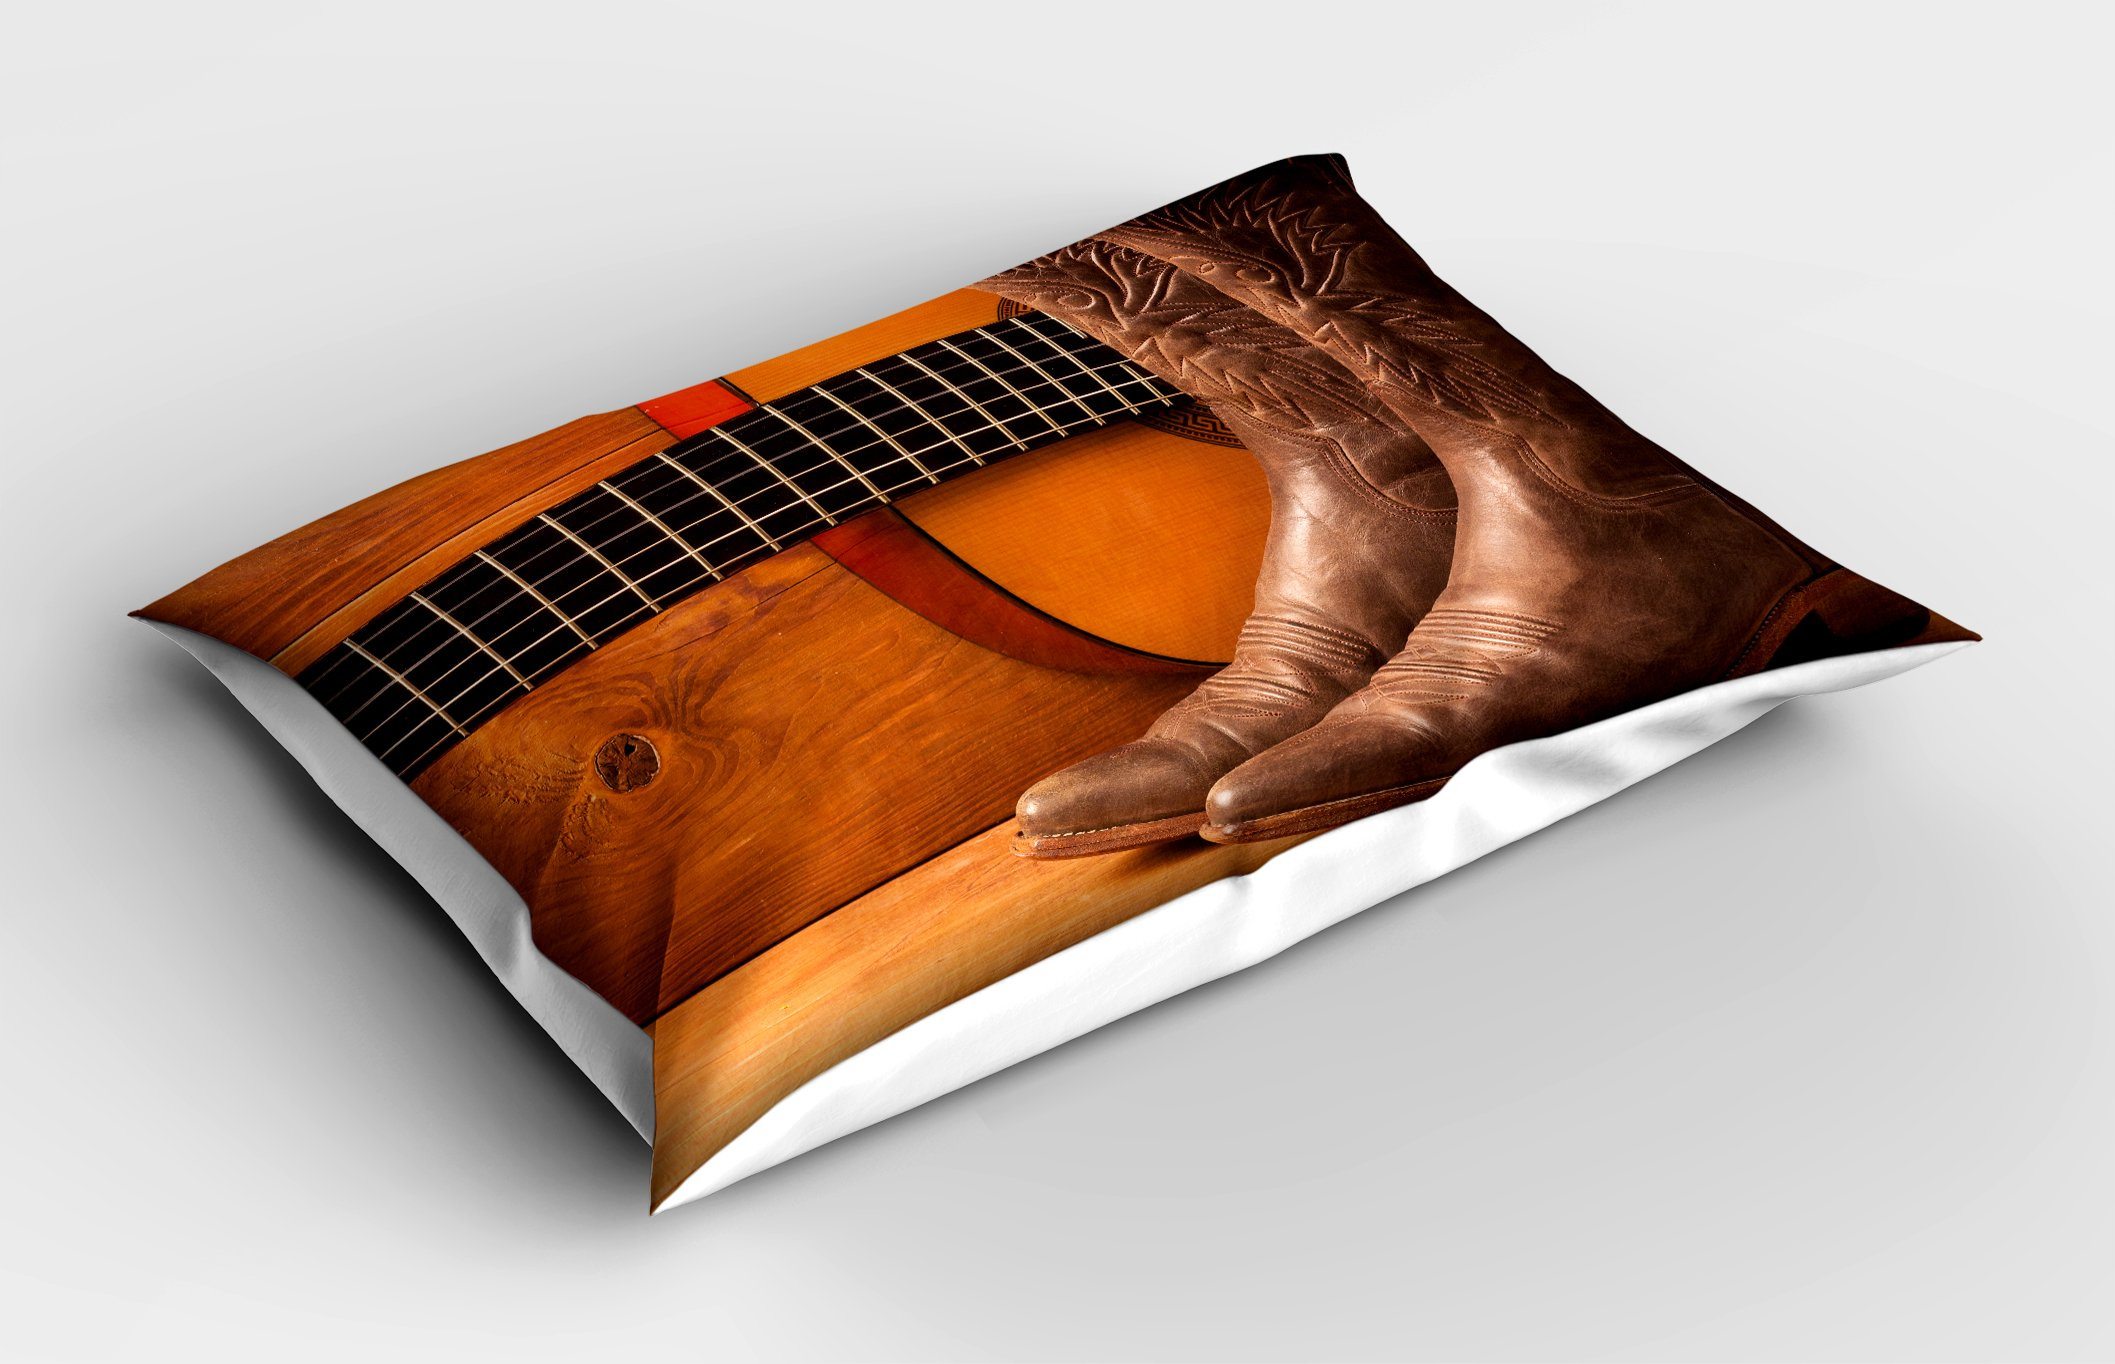 Lunarable Western Pillow Sham, American Country Music Theme Guitar Instrument and Cowboy Shoes on Wood Image, Decorative Standard Queen Size Printed Pillowcase, 30 X 20 Inches, Brown Orange by Lunarable (Image #2)